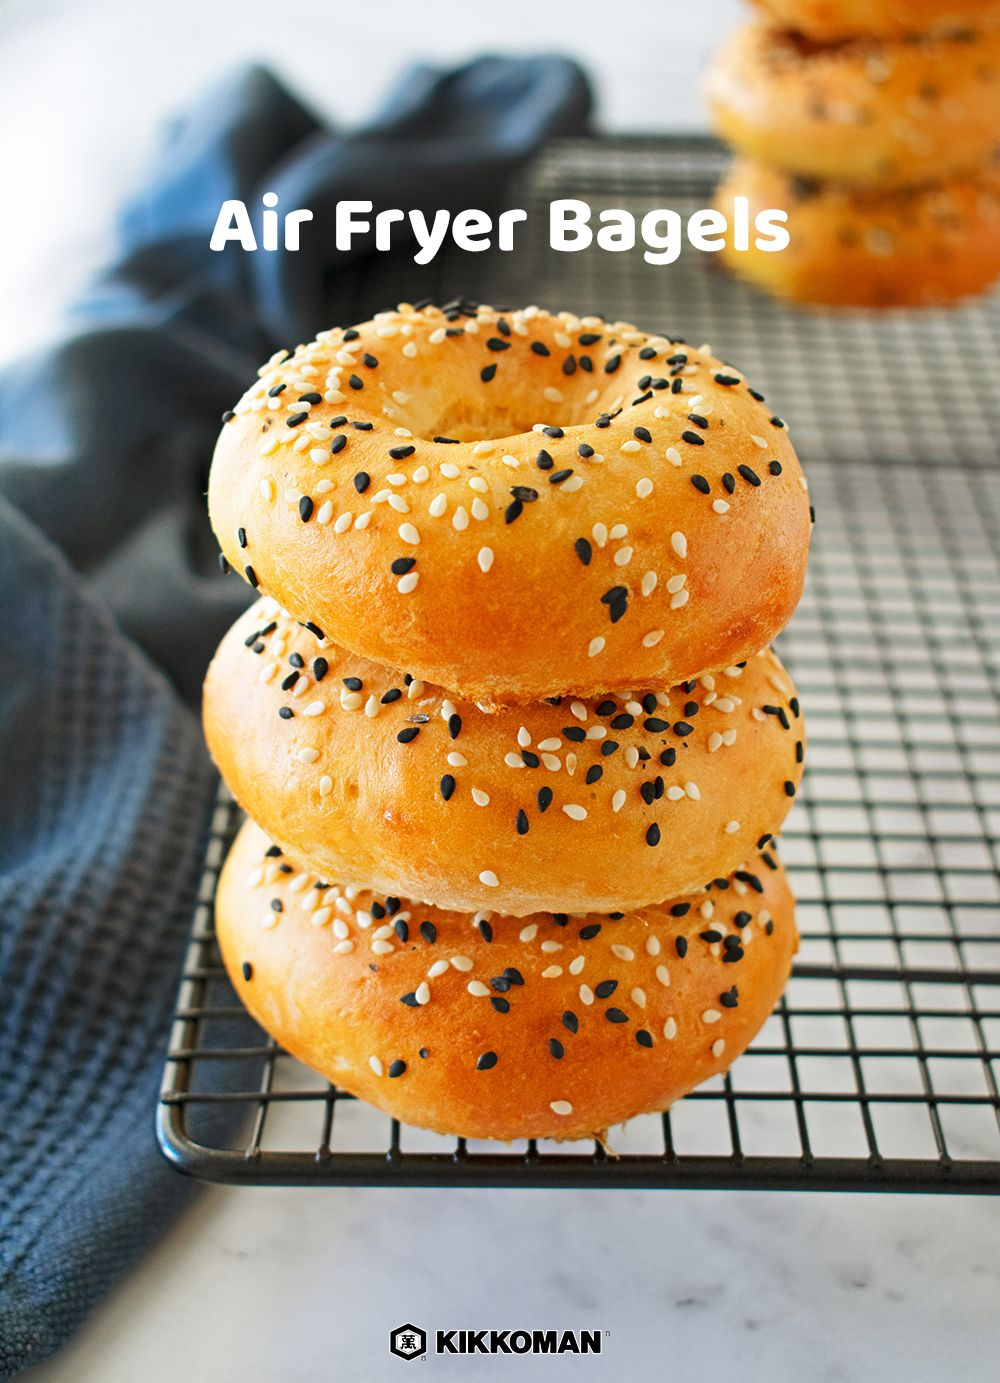 Savory Glazed Air Fryer Bagels Recipe in 2020 Recipes